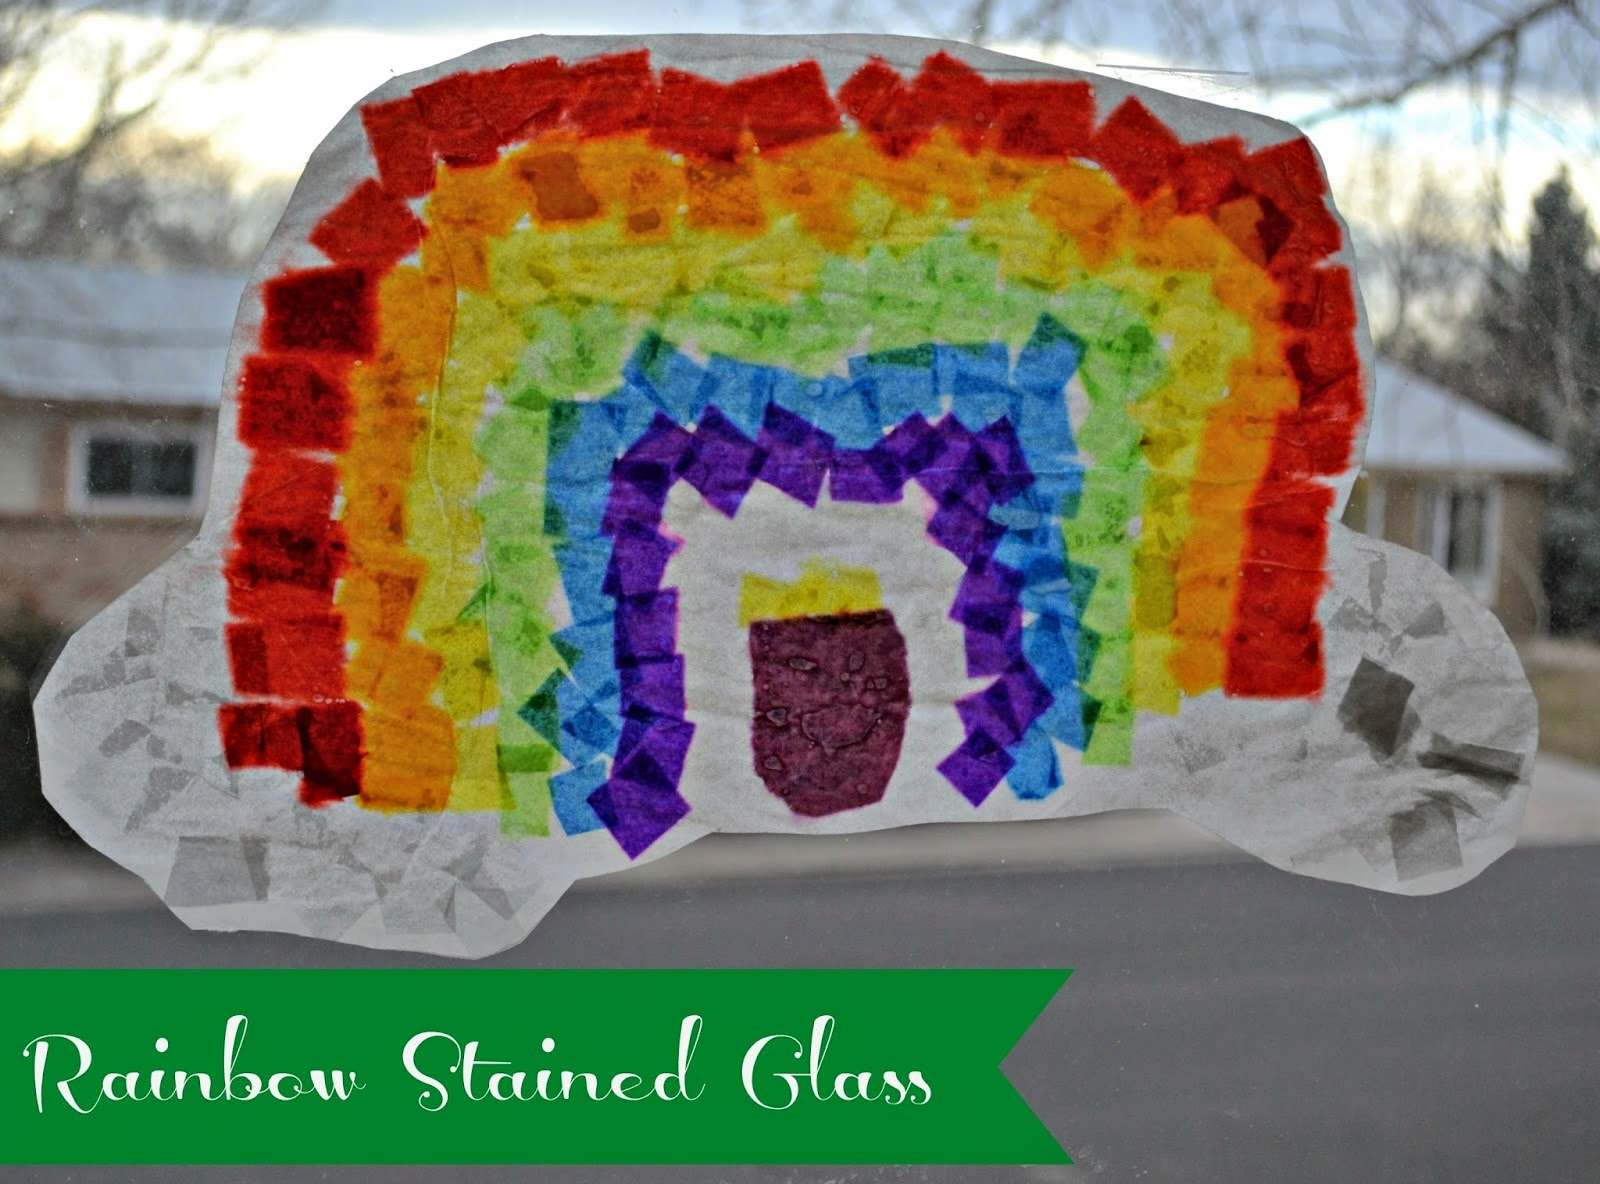 St pattys day crafts - St Patrick S Day Craft Ideas St Patricks Day Crafts St Patrick S Day